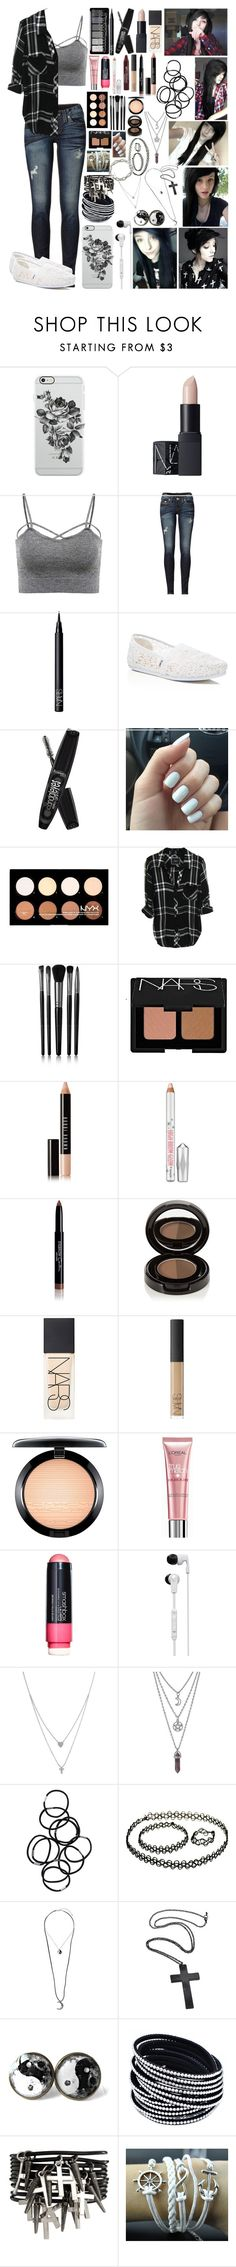 """""""Alex Dorame ~12~"""" by i-am-the-one-and-only ❤ liked on Polyvore featuring Uncommon, NARS Cosmetics, True Religion, TOMS, Rimmel, Illamasqua, Bobbi Brown Cosmetics, Benefit, Givenchy and Anastasia Beverly Hills"""